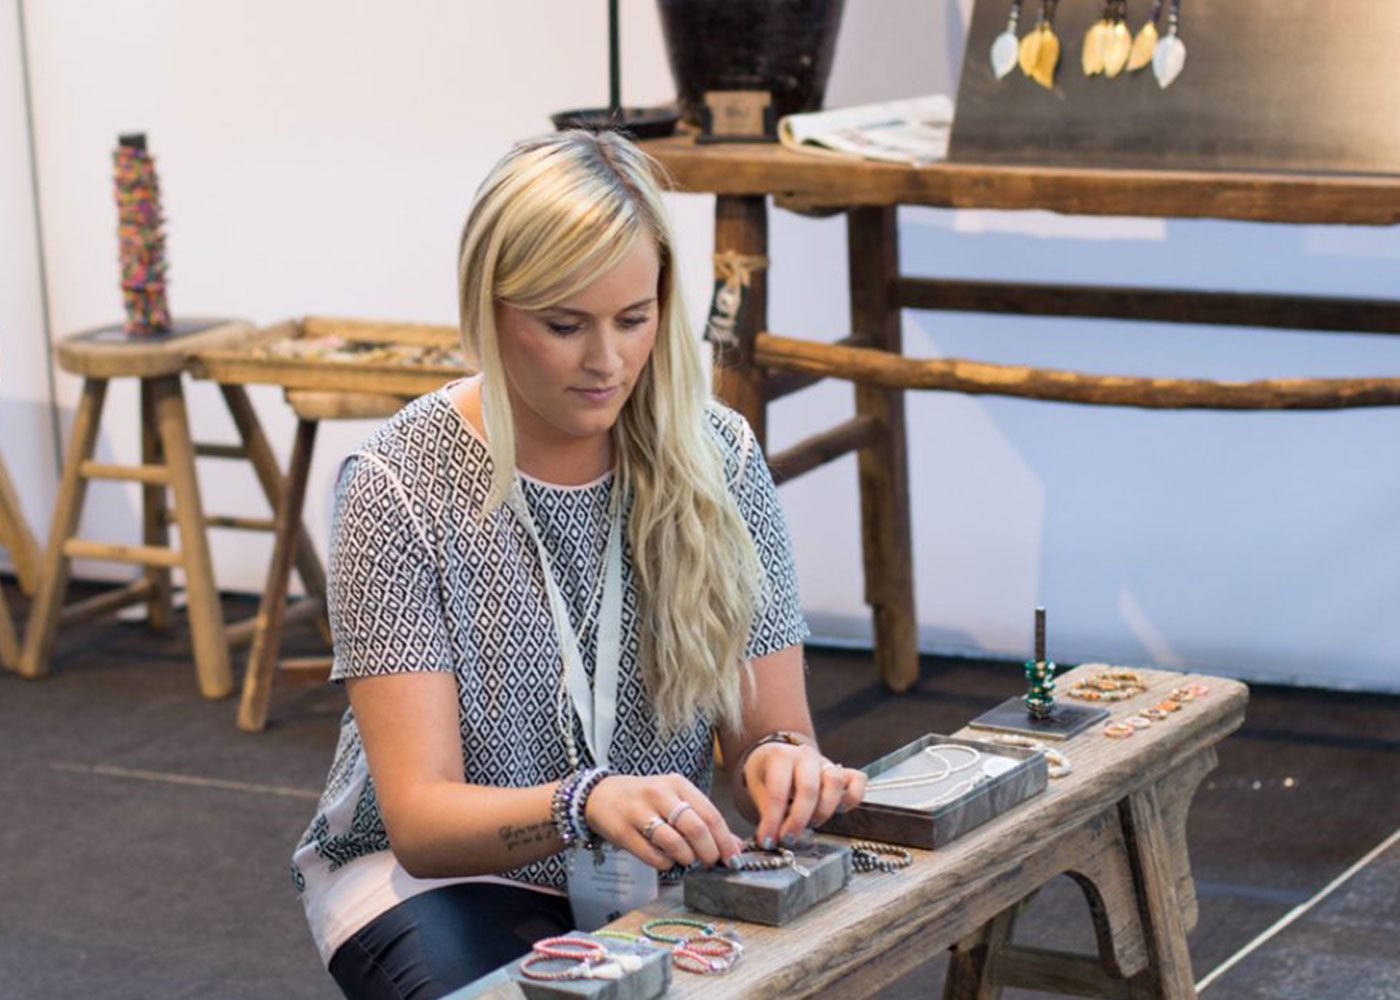 Mai Copenhagen uses Plytix to efficiently share product content at trade shows